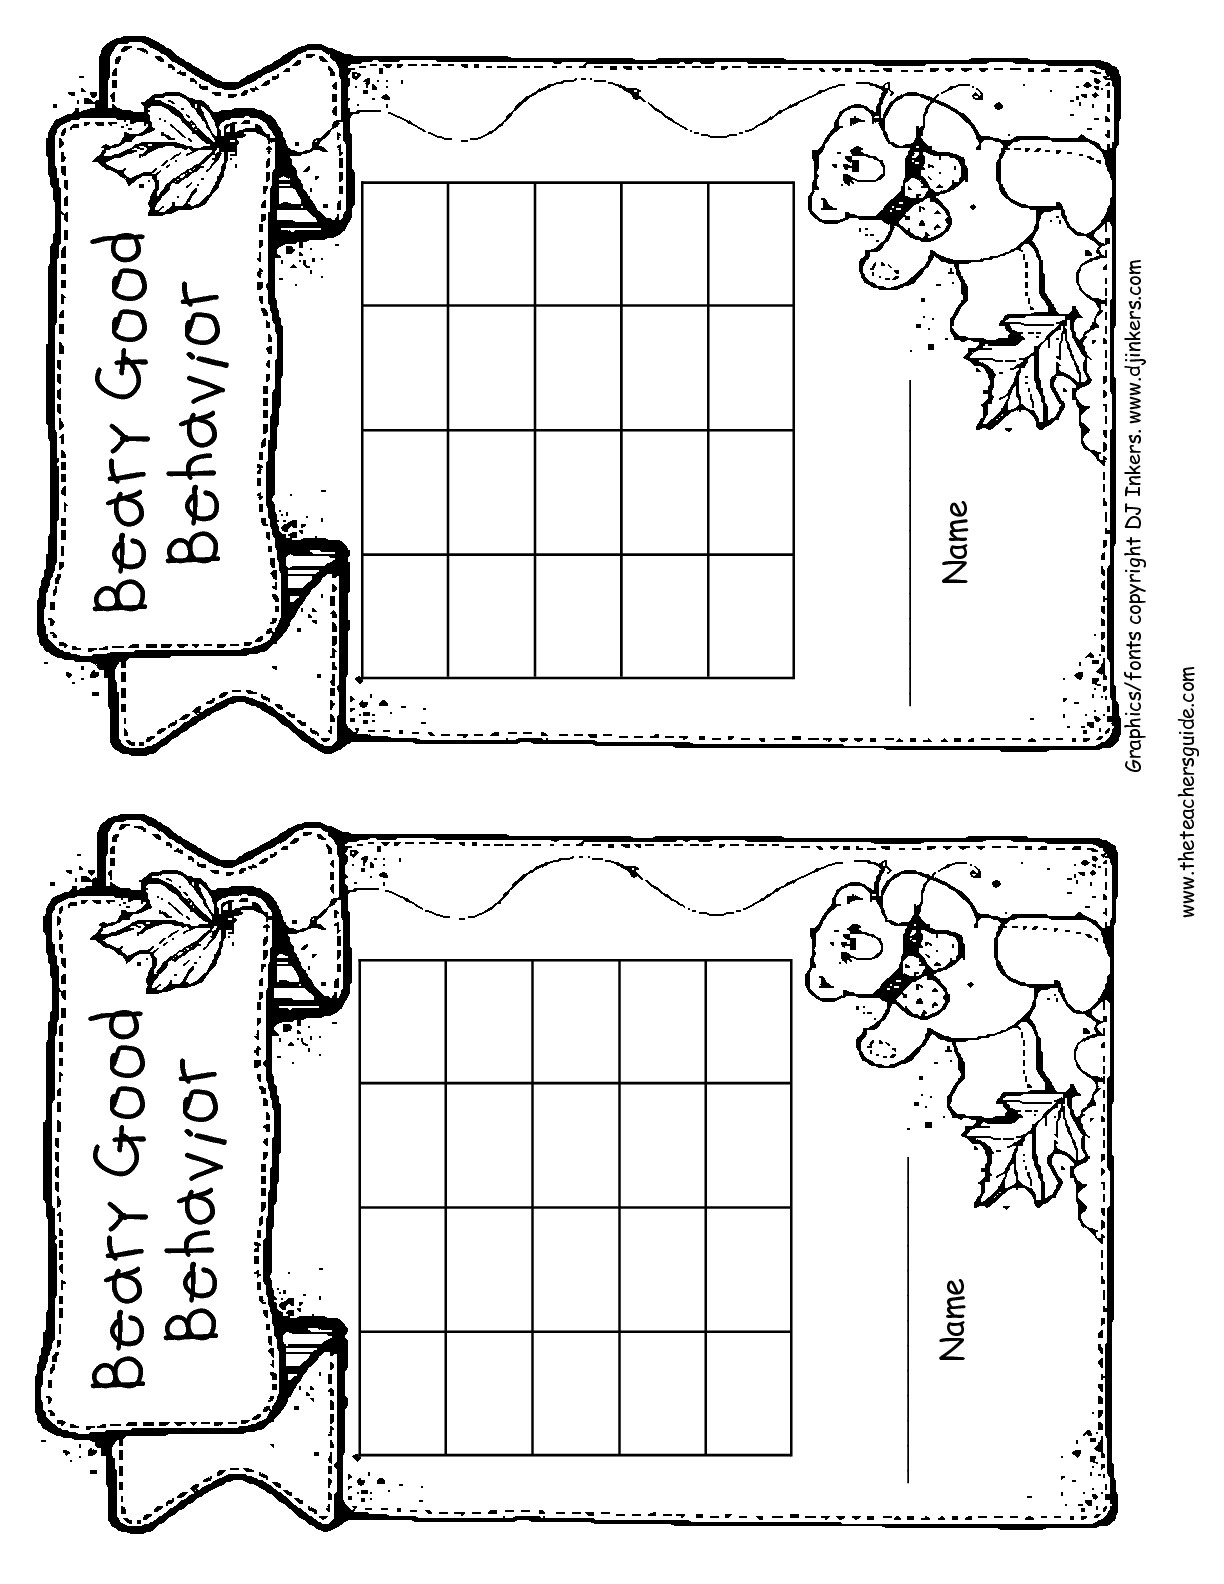 Free Printable Reward And Incentive Charts - Free Printable Incentive Charts For Teachers